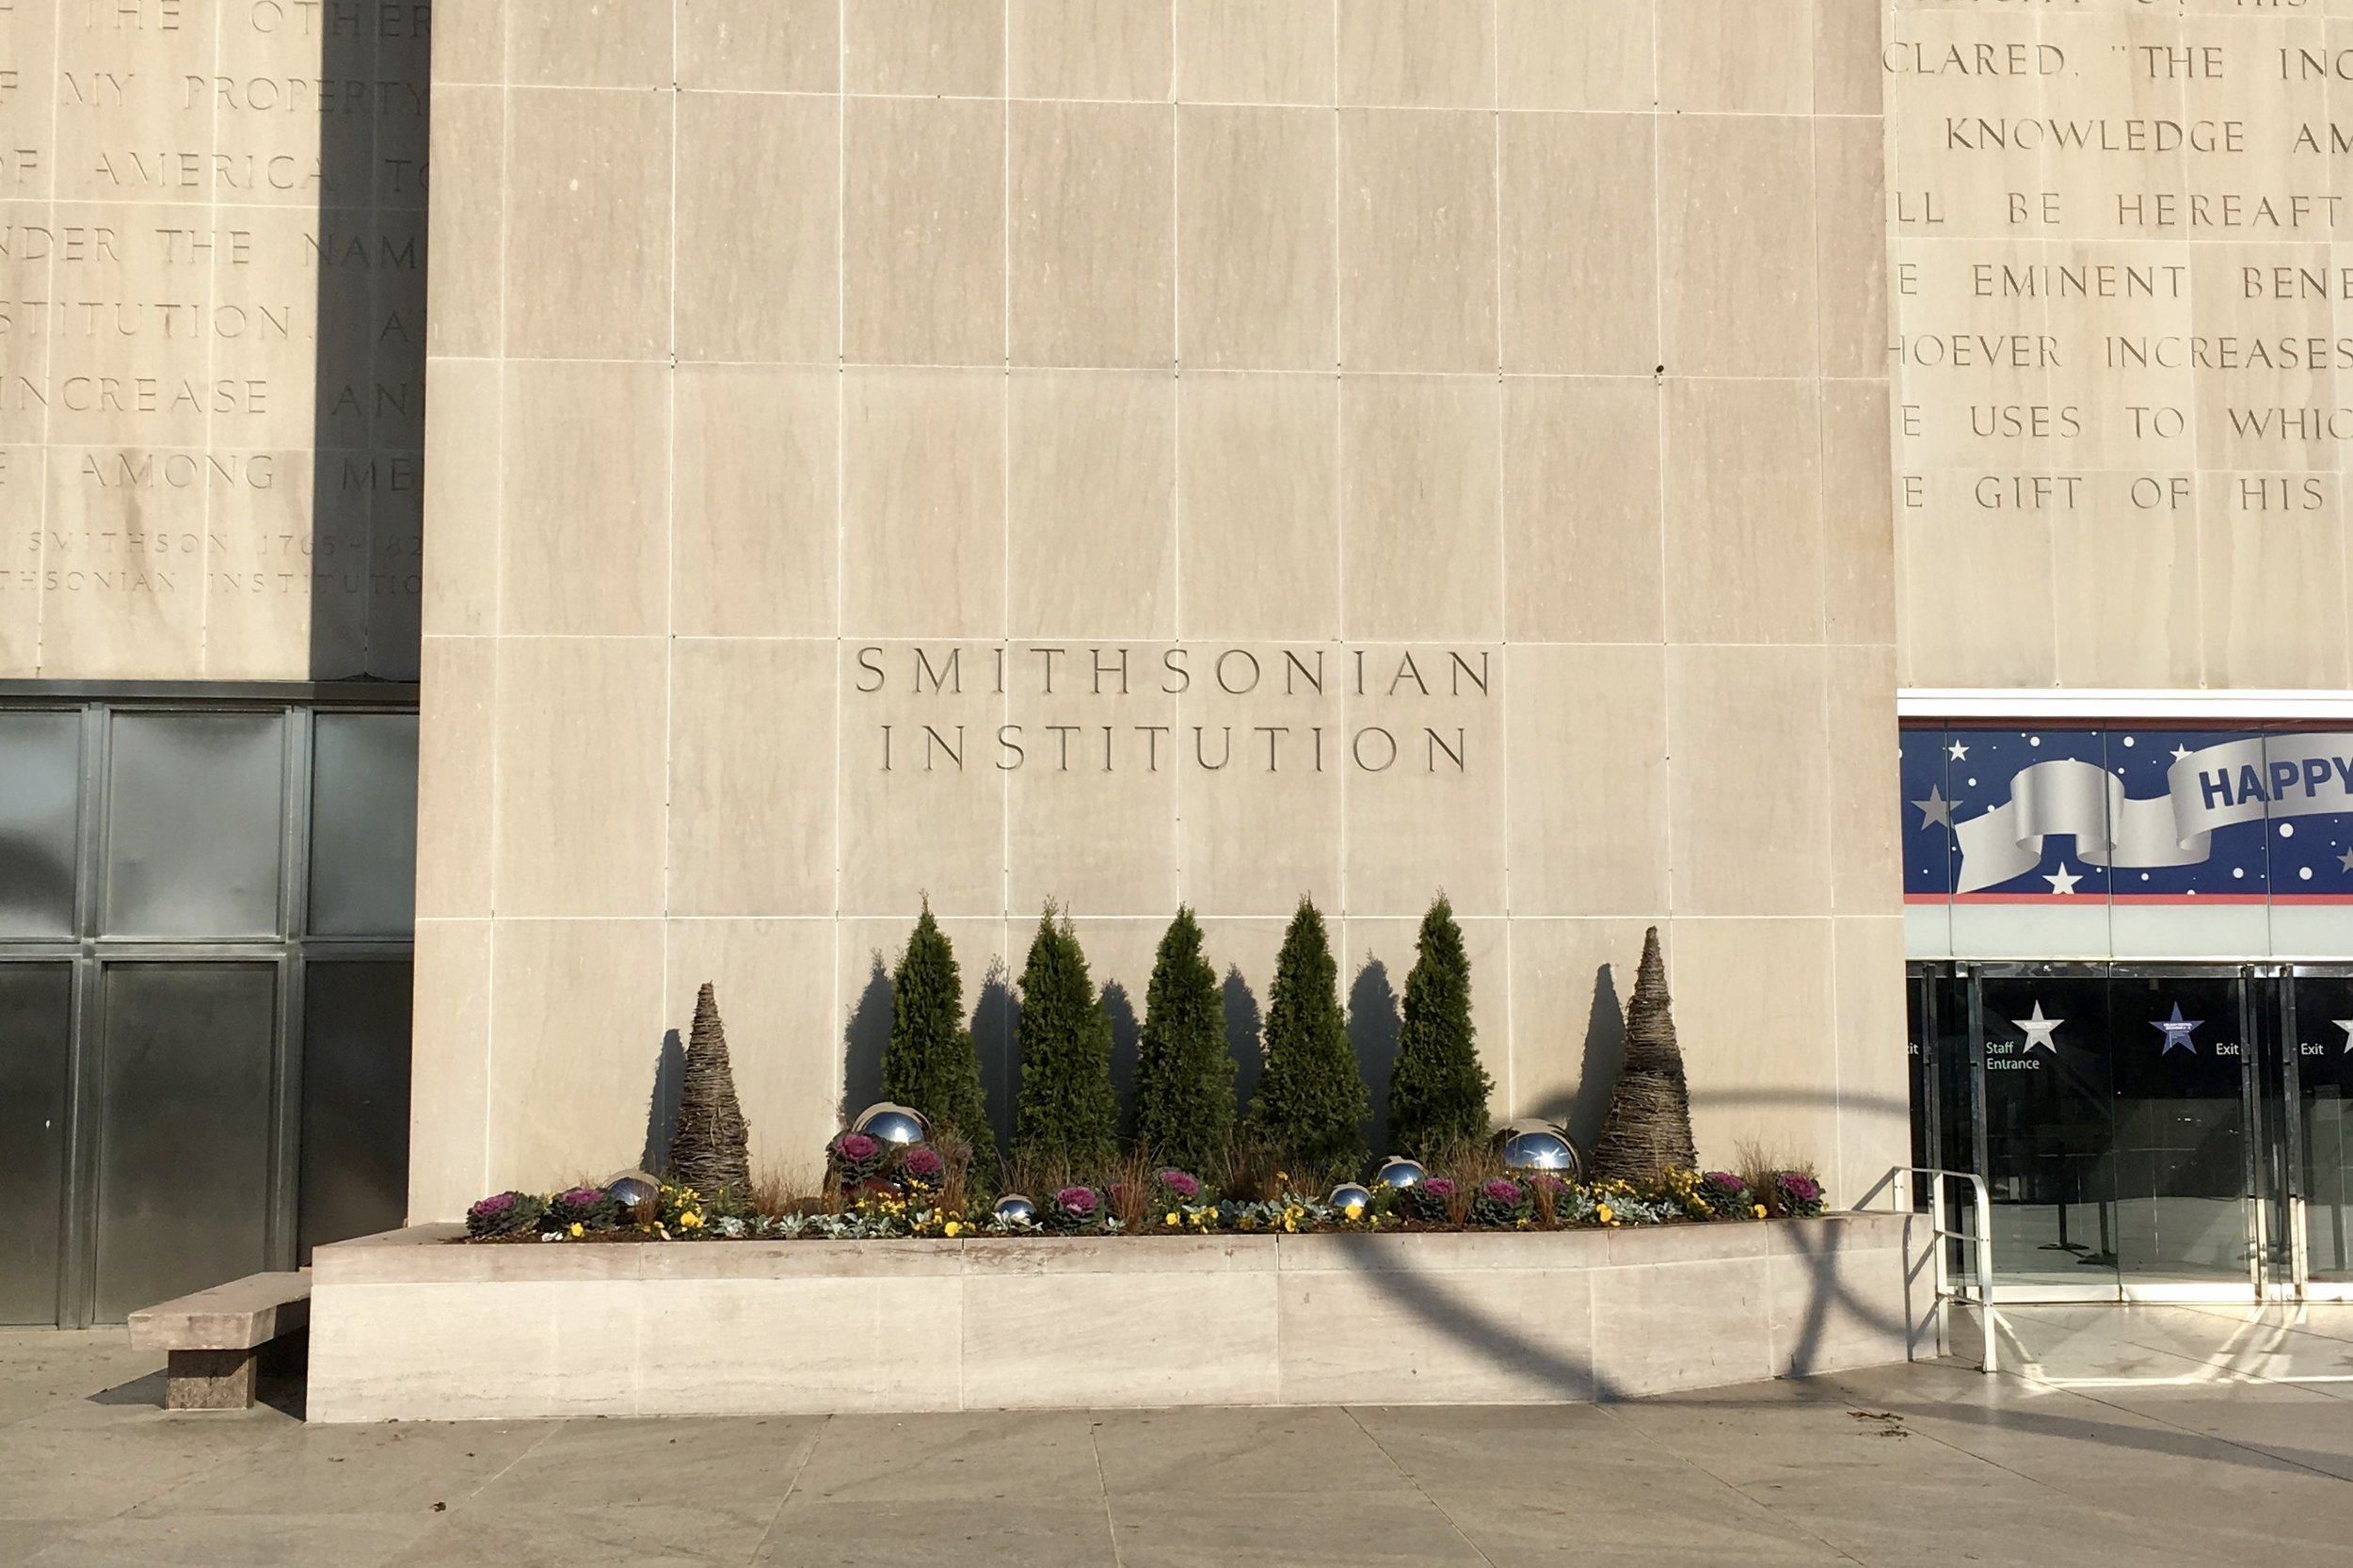 Image: the front of the Smithsonian National Museum of American History